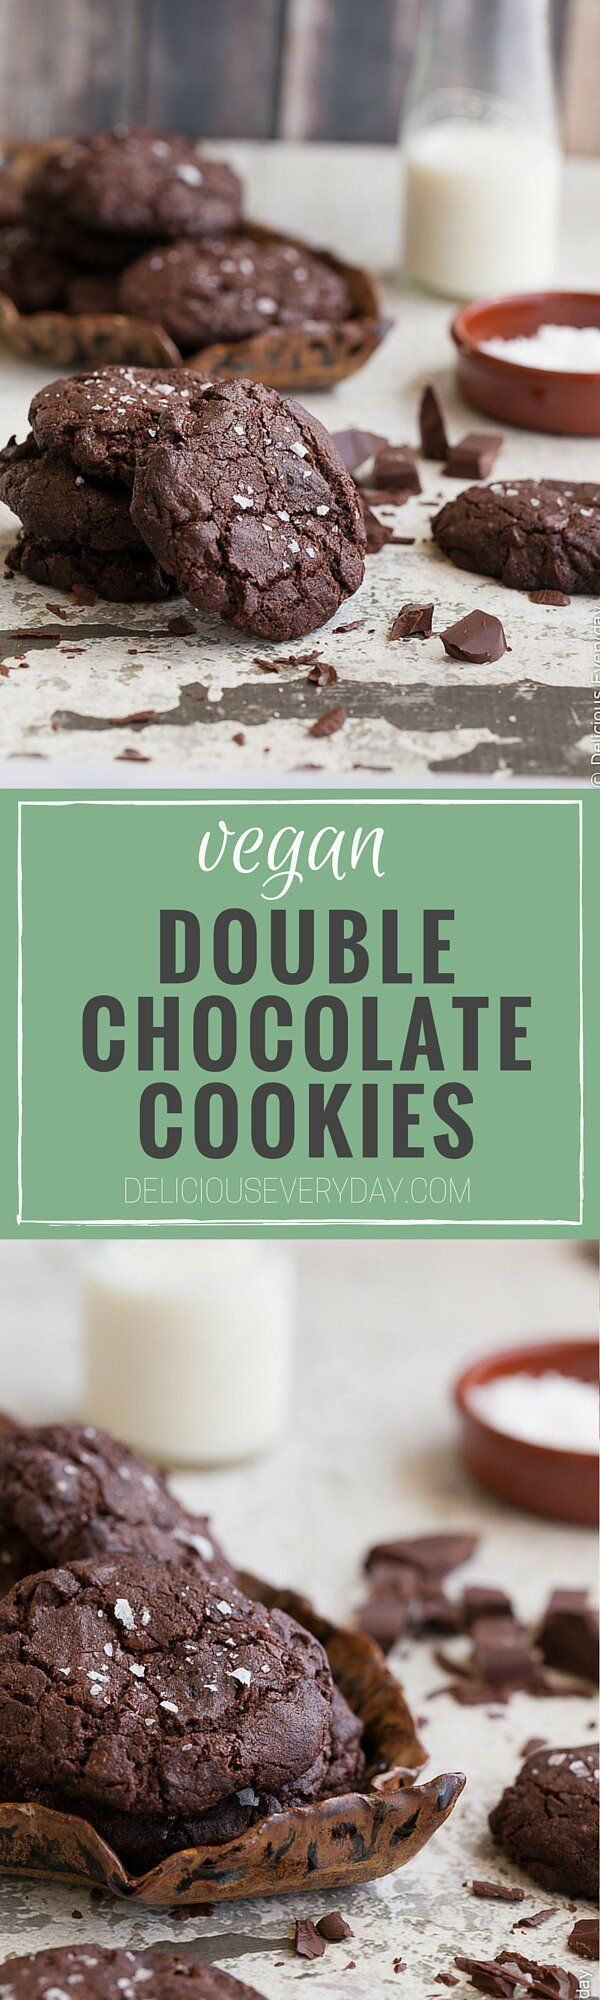 Jam packed with shaved dark chocolate and topped with flaky sea salt these vegan chocolate cookies are chewy, gooey and totally decadent.   -----> Click for the recipe